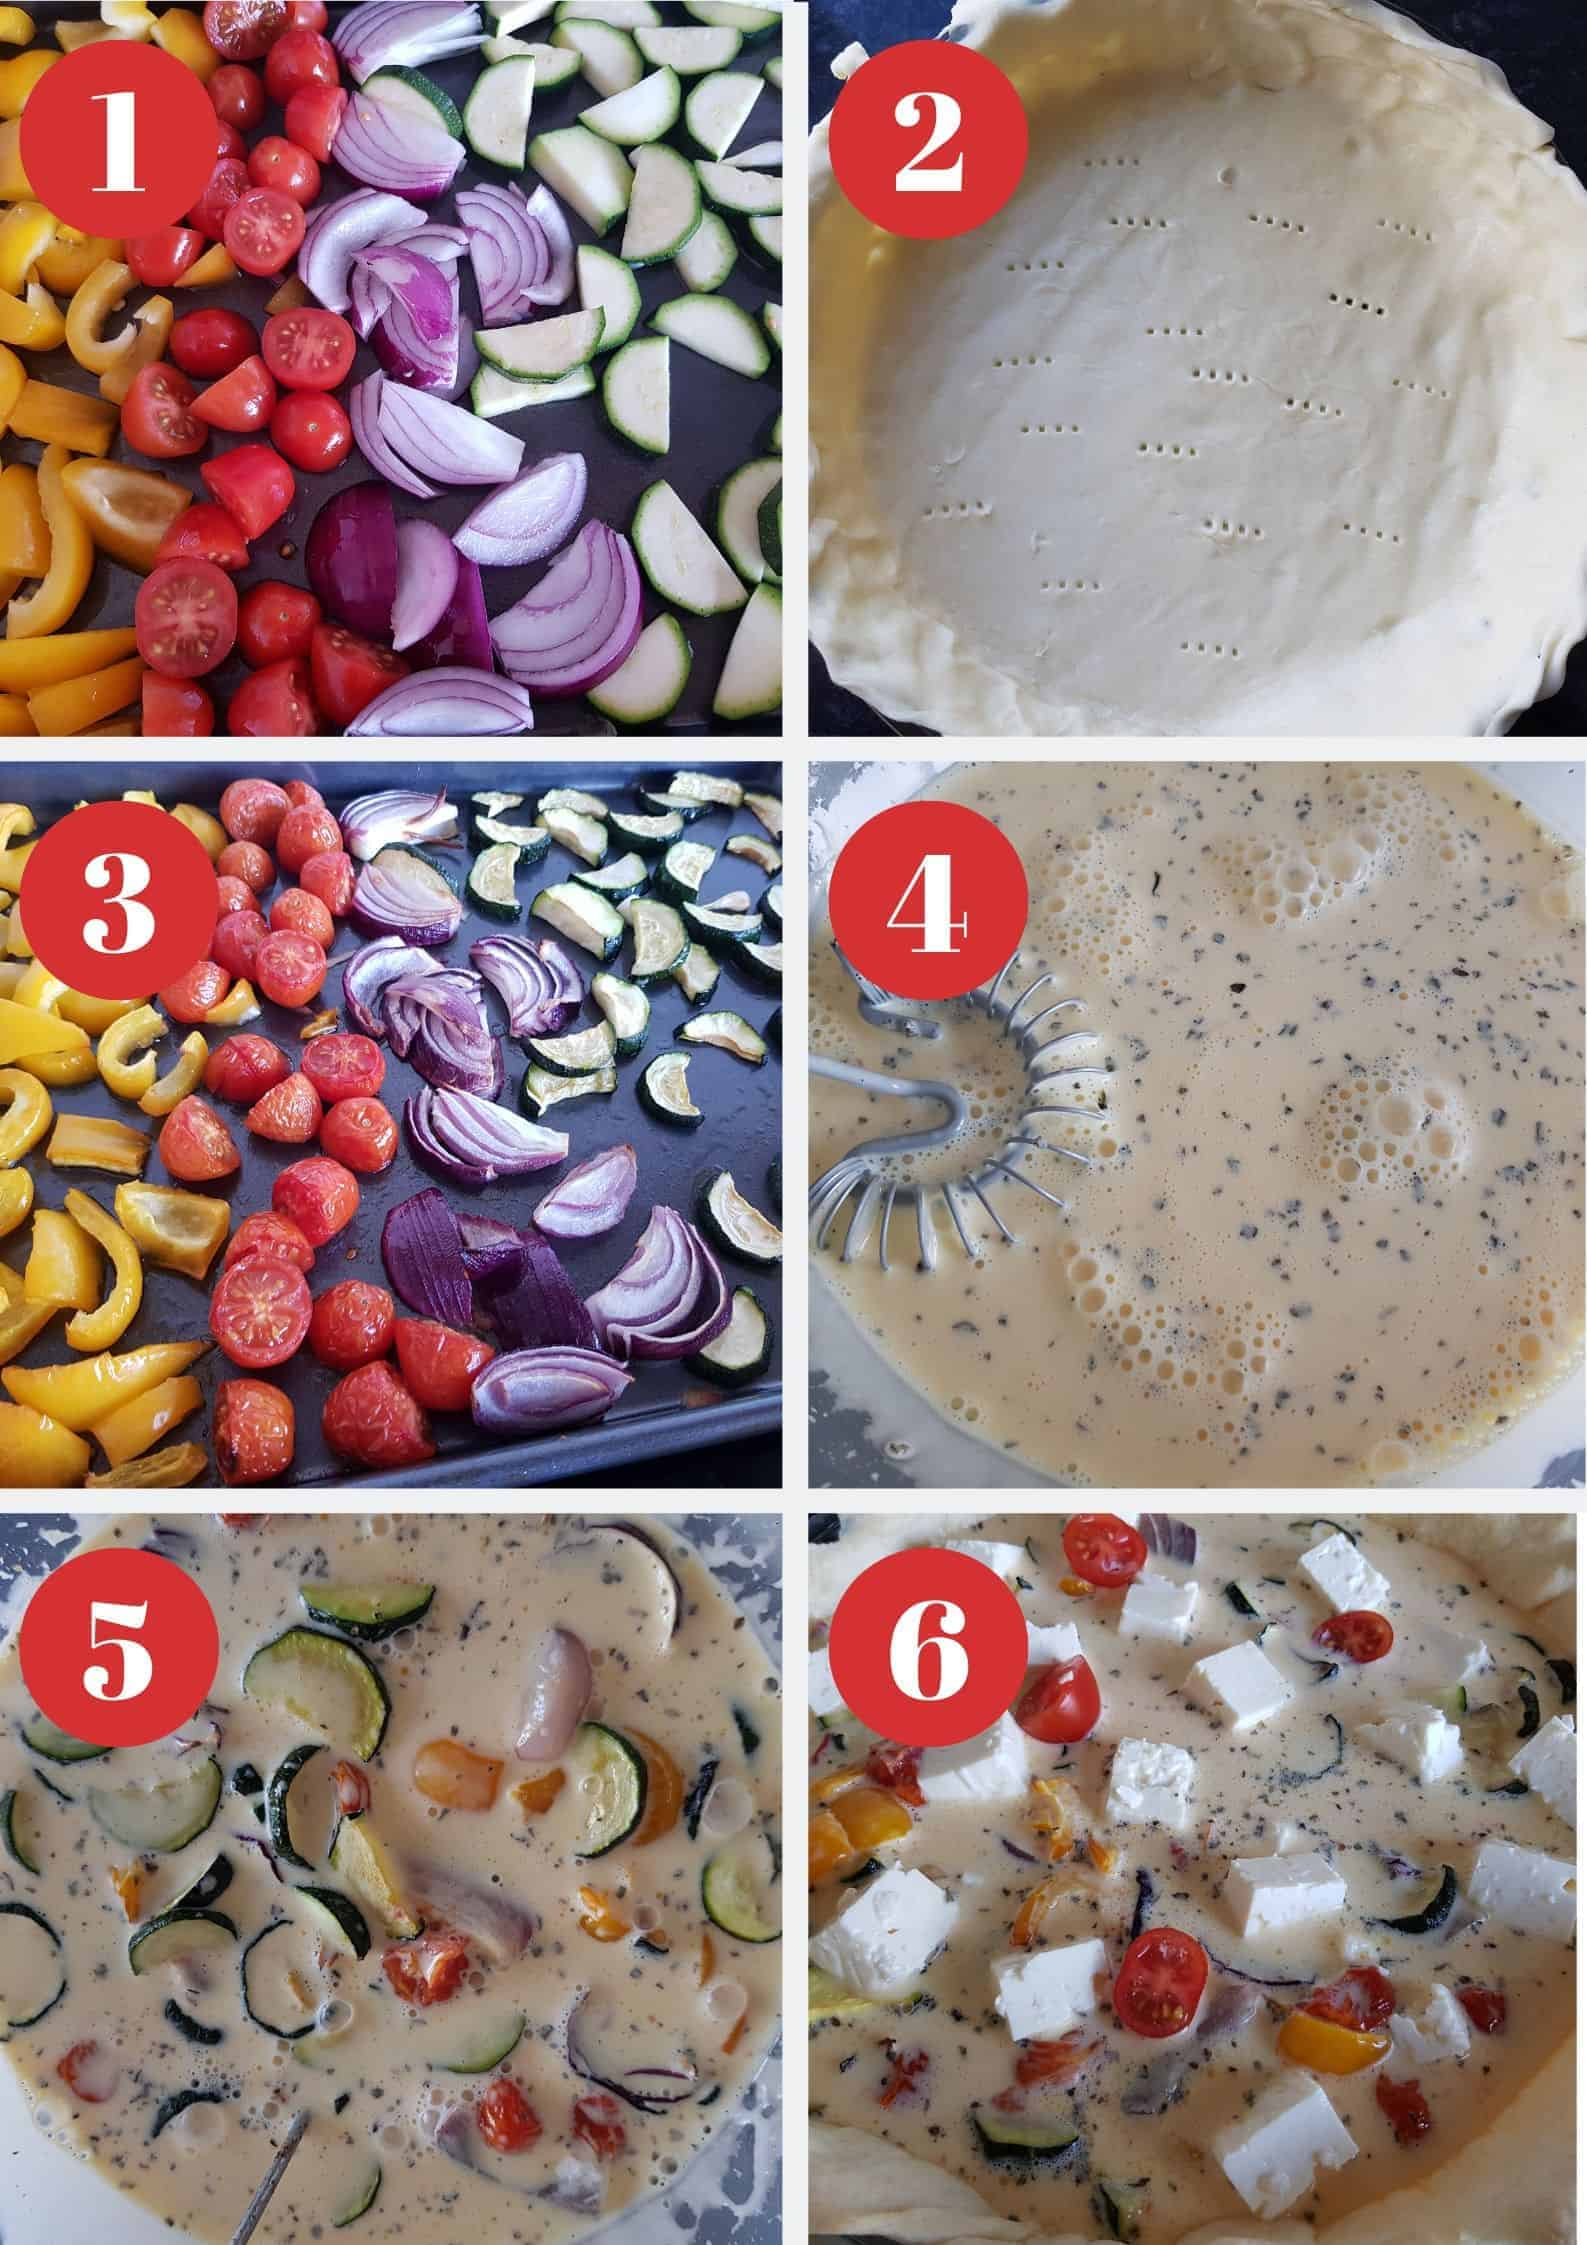 Infographic showing How to make roasted vegetable and feta quiche.